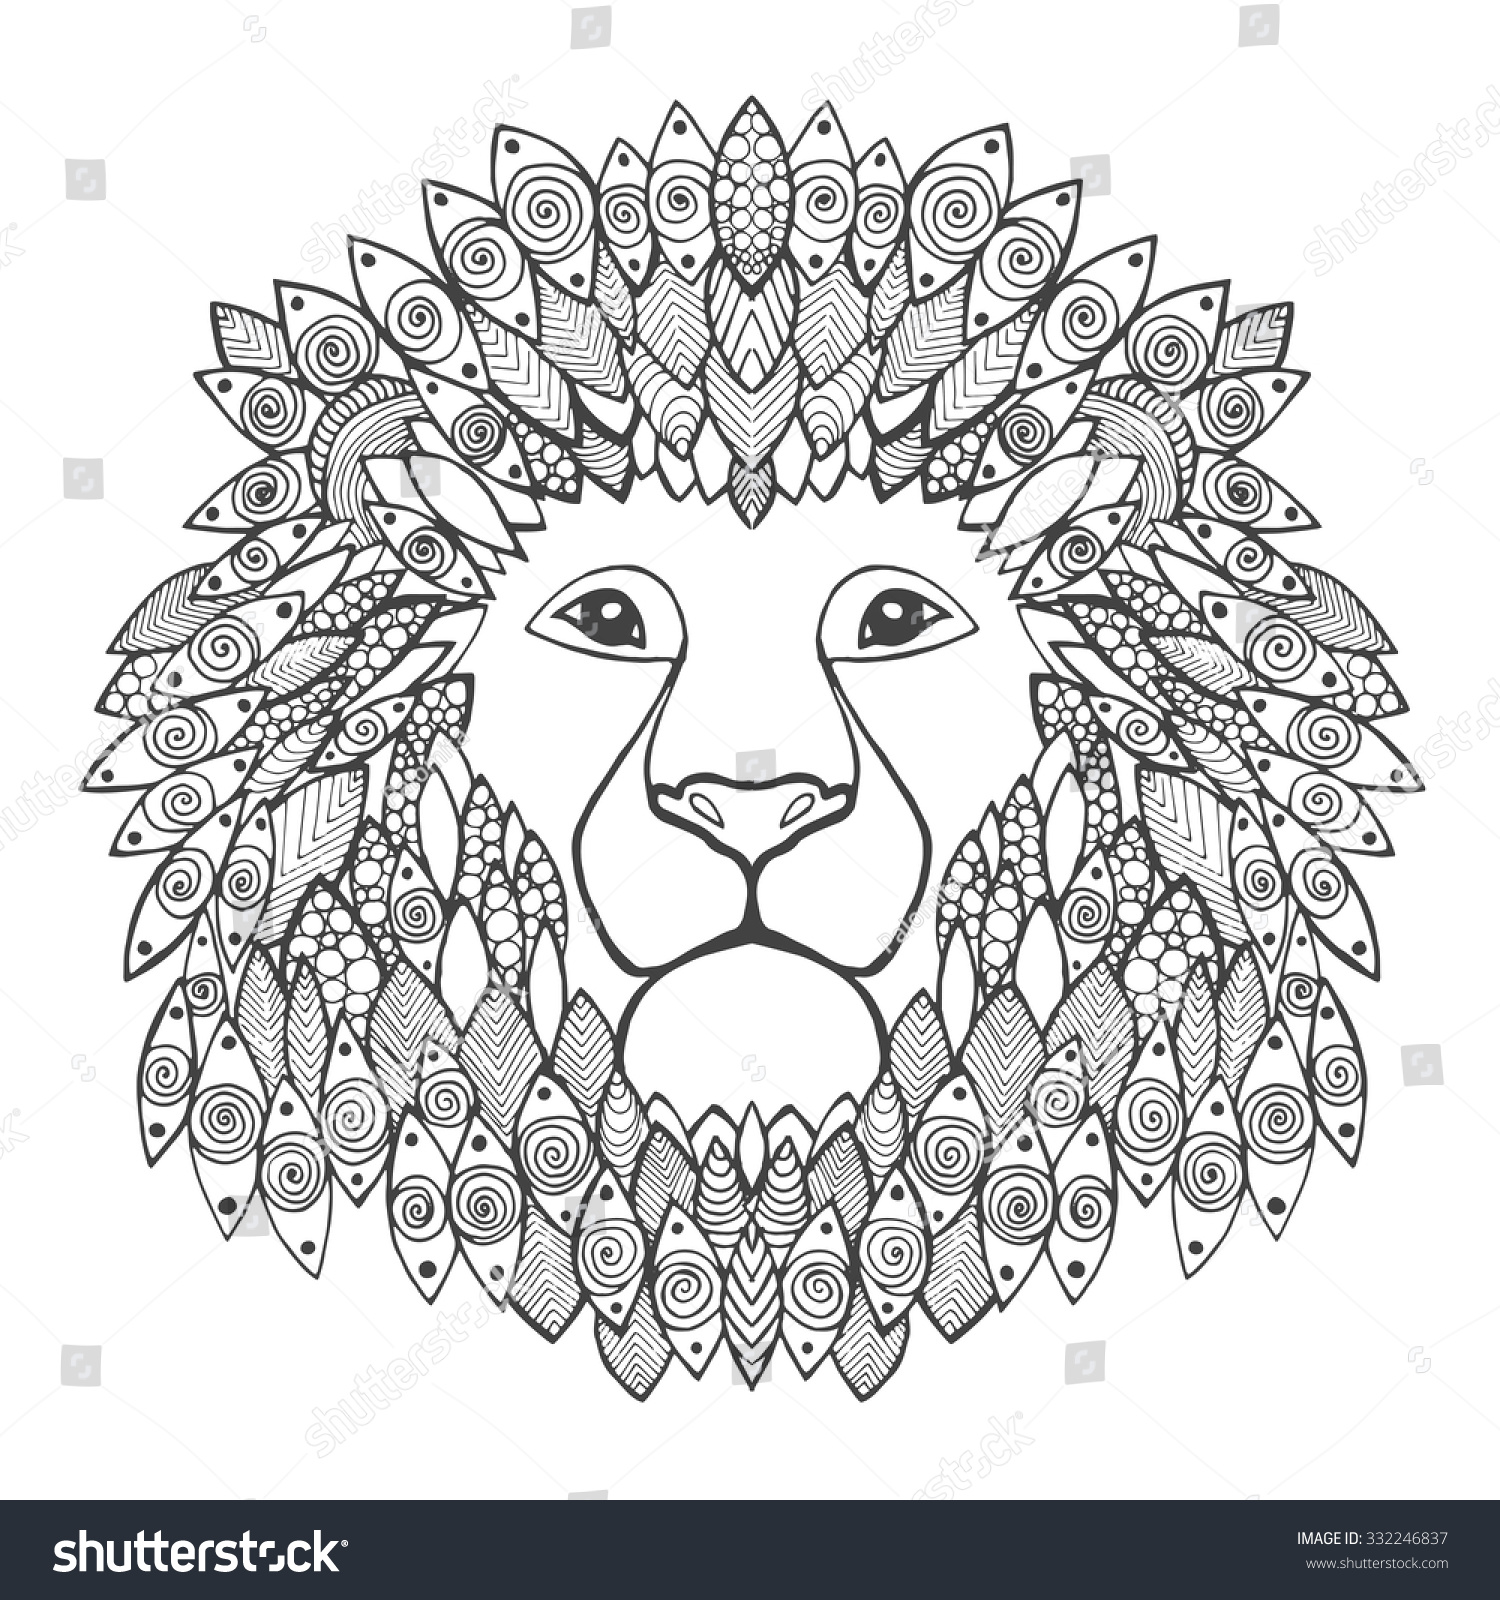 Coloring book for adults lion - Lion Head Adult Antistress Coloring Page Black White Hand Drawn Doodle Animal Ethnic